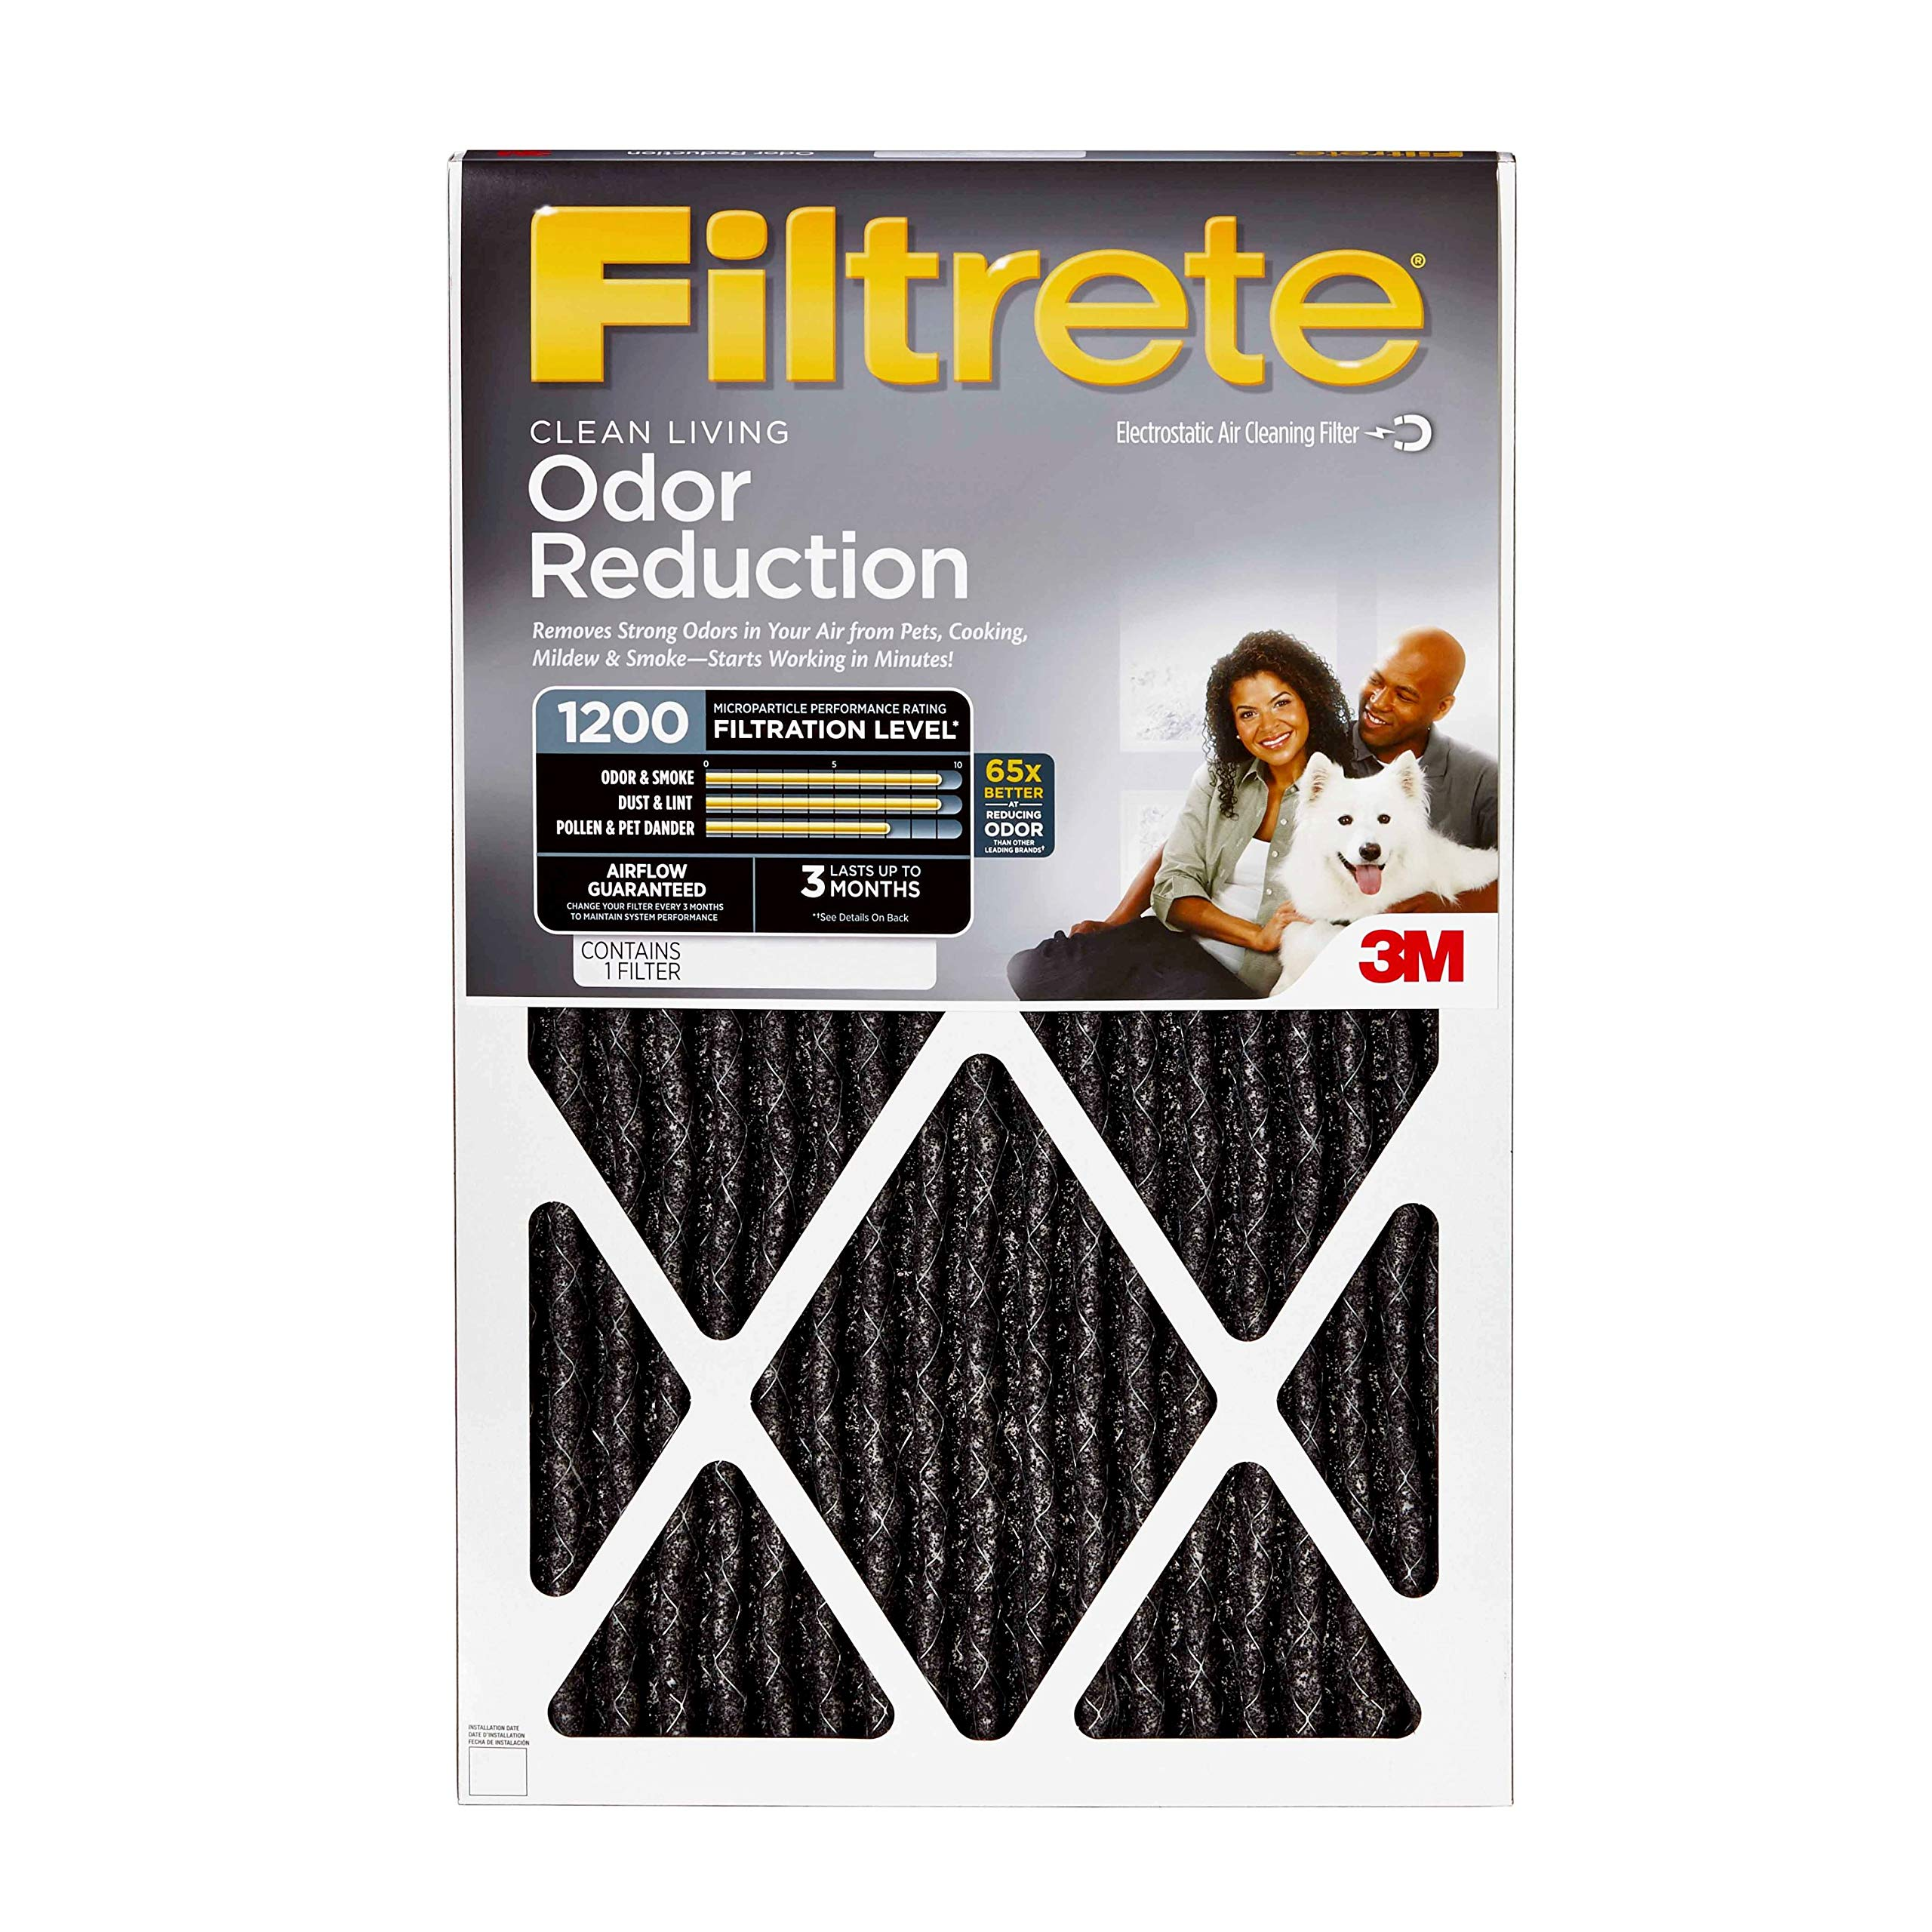 Filtrete 16x25x1, AC Furnace Air Filter, MPR 1200, Allergen Defense Odor Reduction, 4-Pack by Filtrete